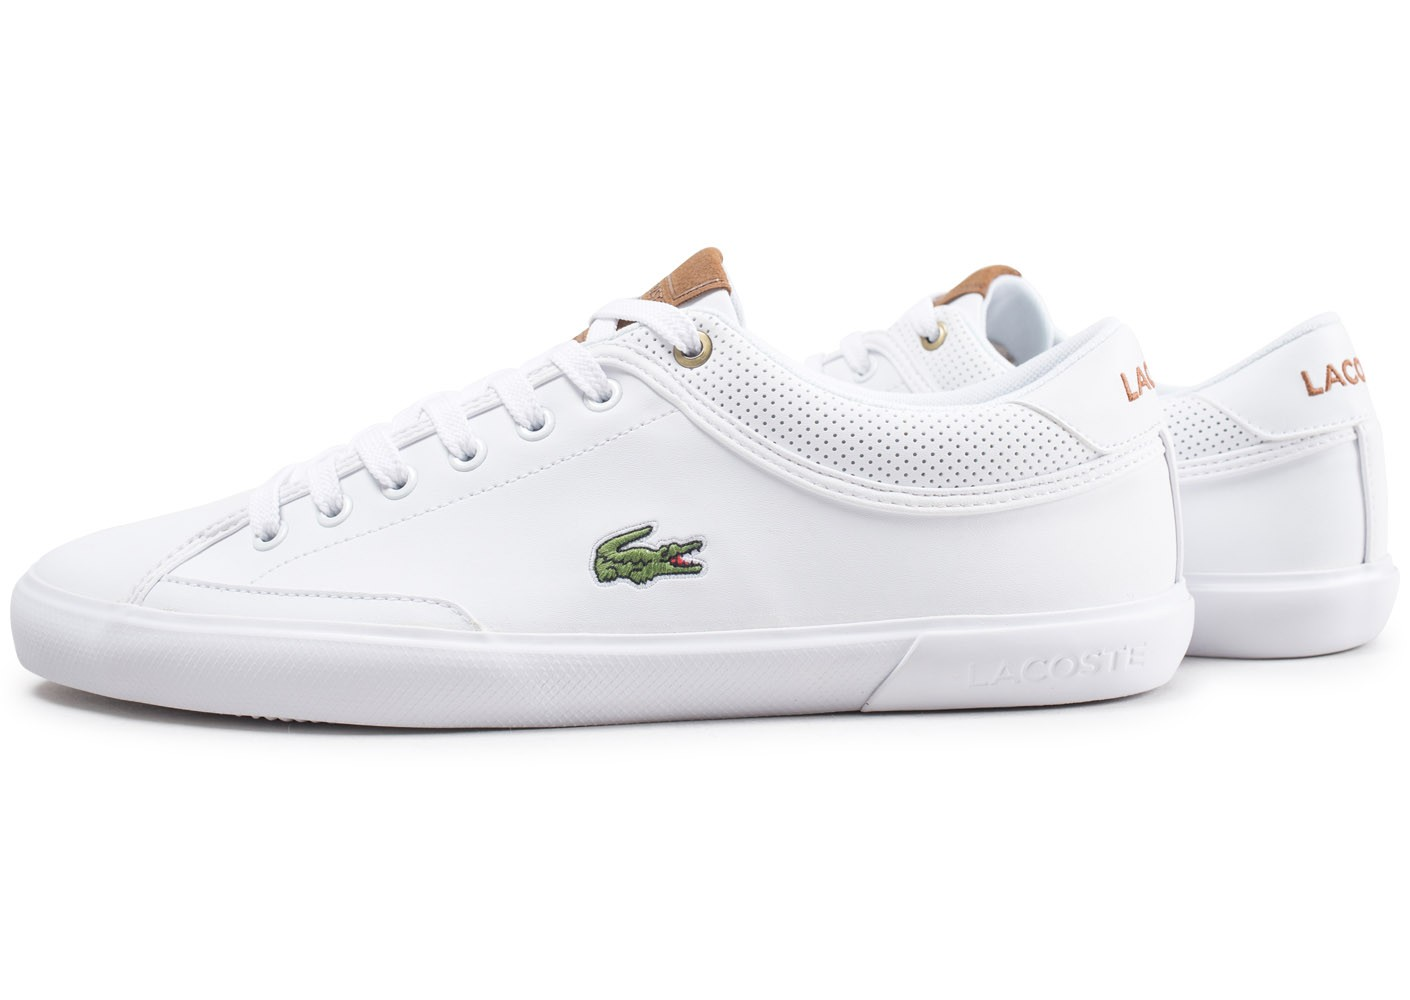 Baskets Blanche Chausport Angha Chaussures Homme Lacoste EDH29IW